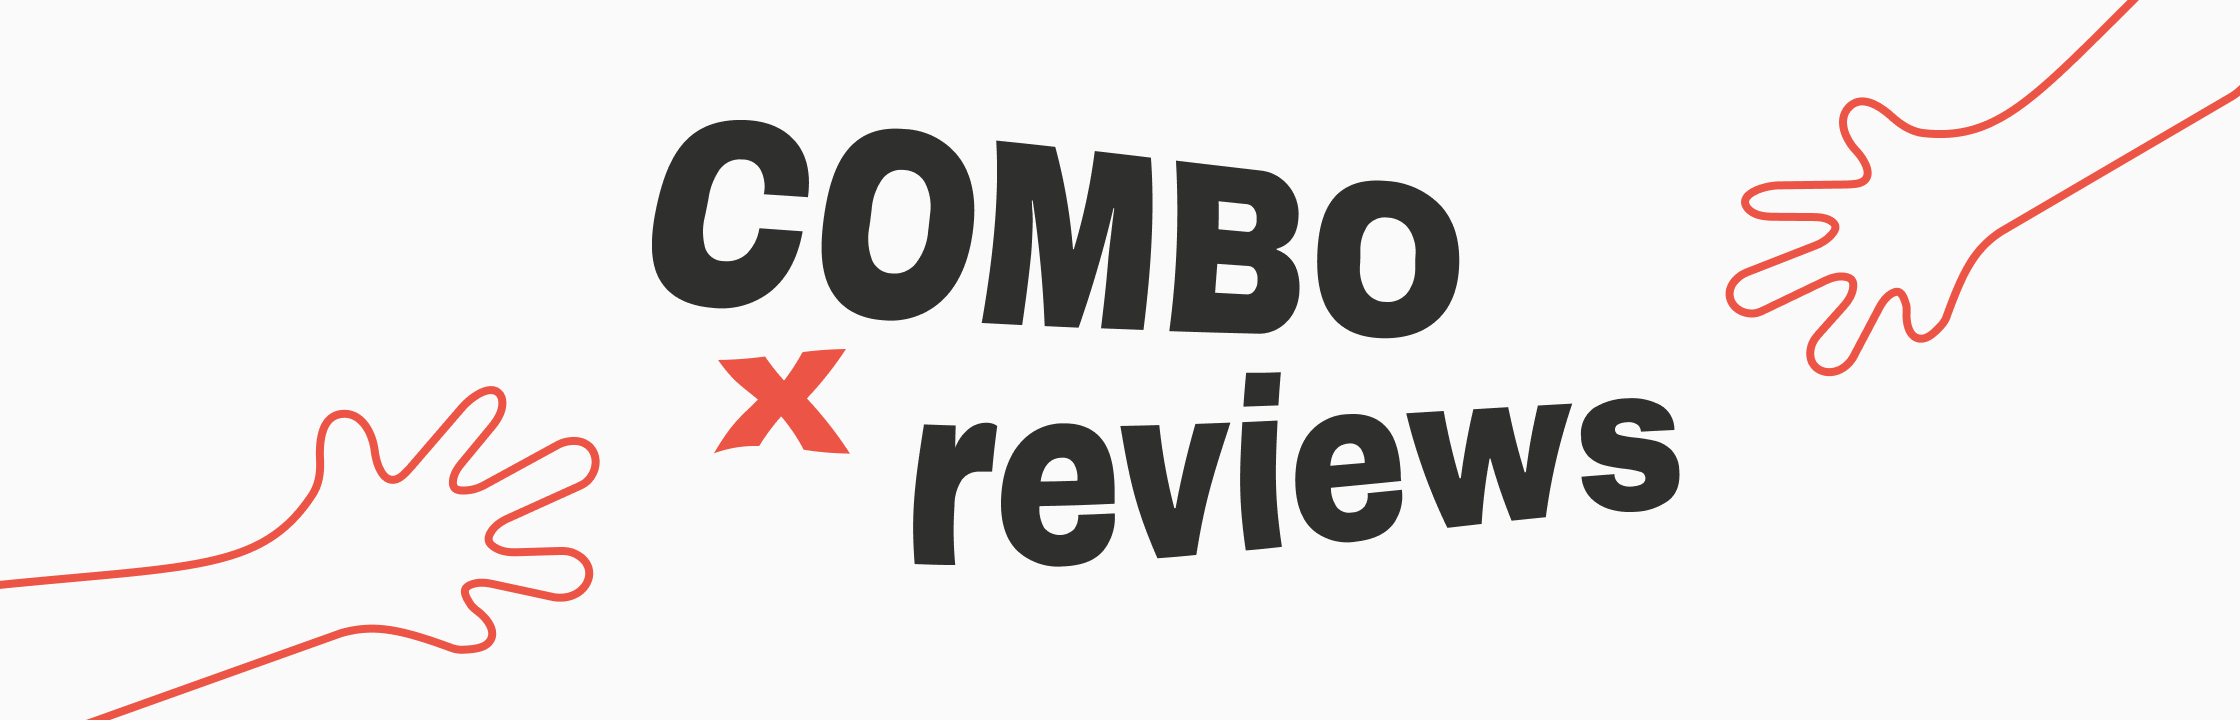 ComboReviews Logo